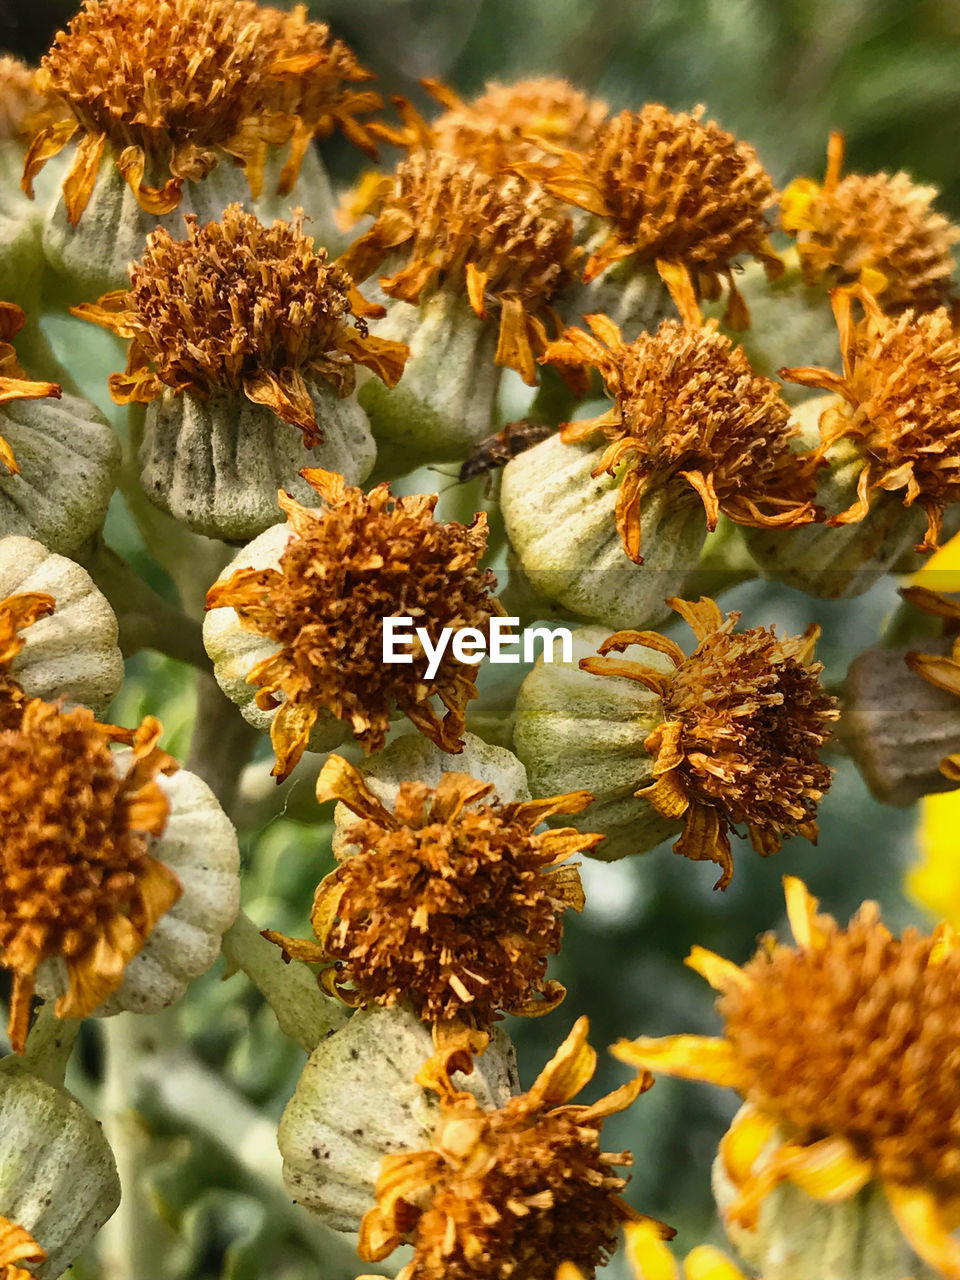 plant, close-up, vulnerability, fragility, flower, growth, flowering plant, beauty in nature, focus on foreground, selective focus, no people, nature, day, flower head, inflorescence, freshness, outdoors, petal, tranquility, orange color, wilted plant, natural condition